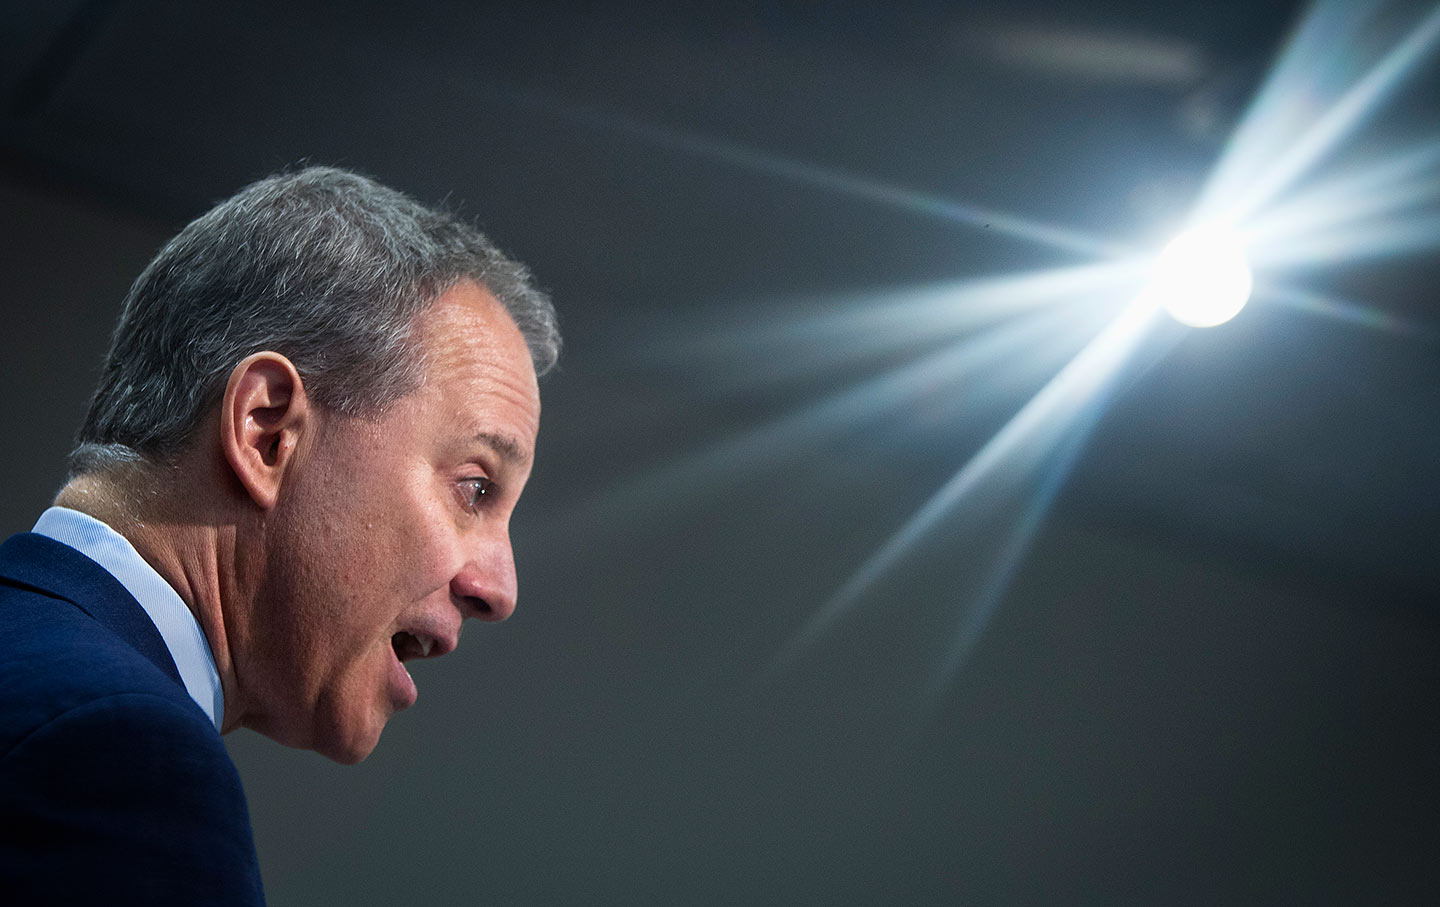 Eric Schneiderman, Accused by 4 Women, Quits as New York Attorney General